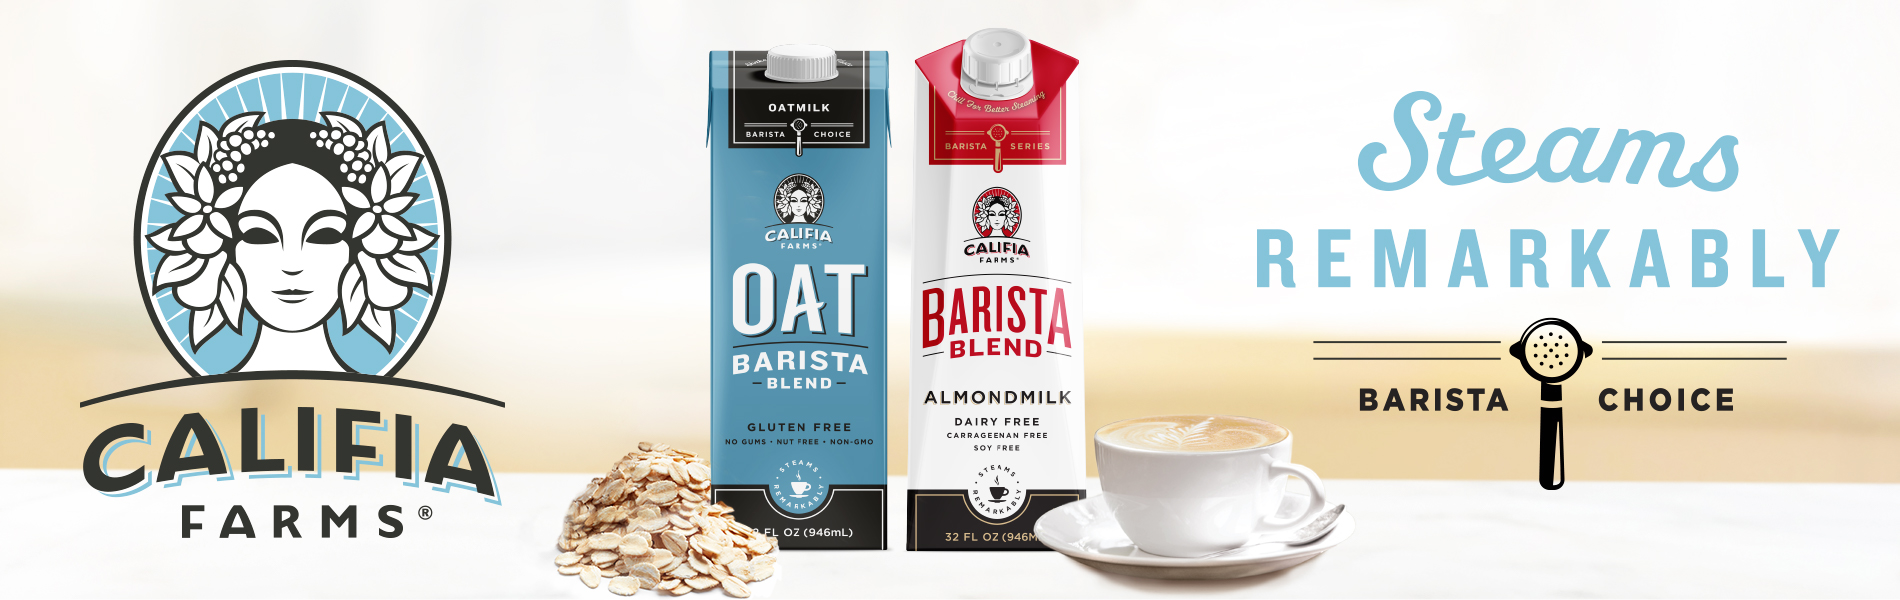 Califia Alternative Beverages